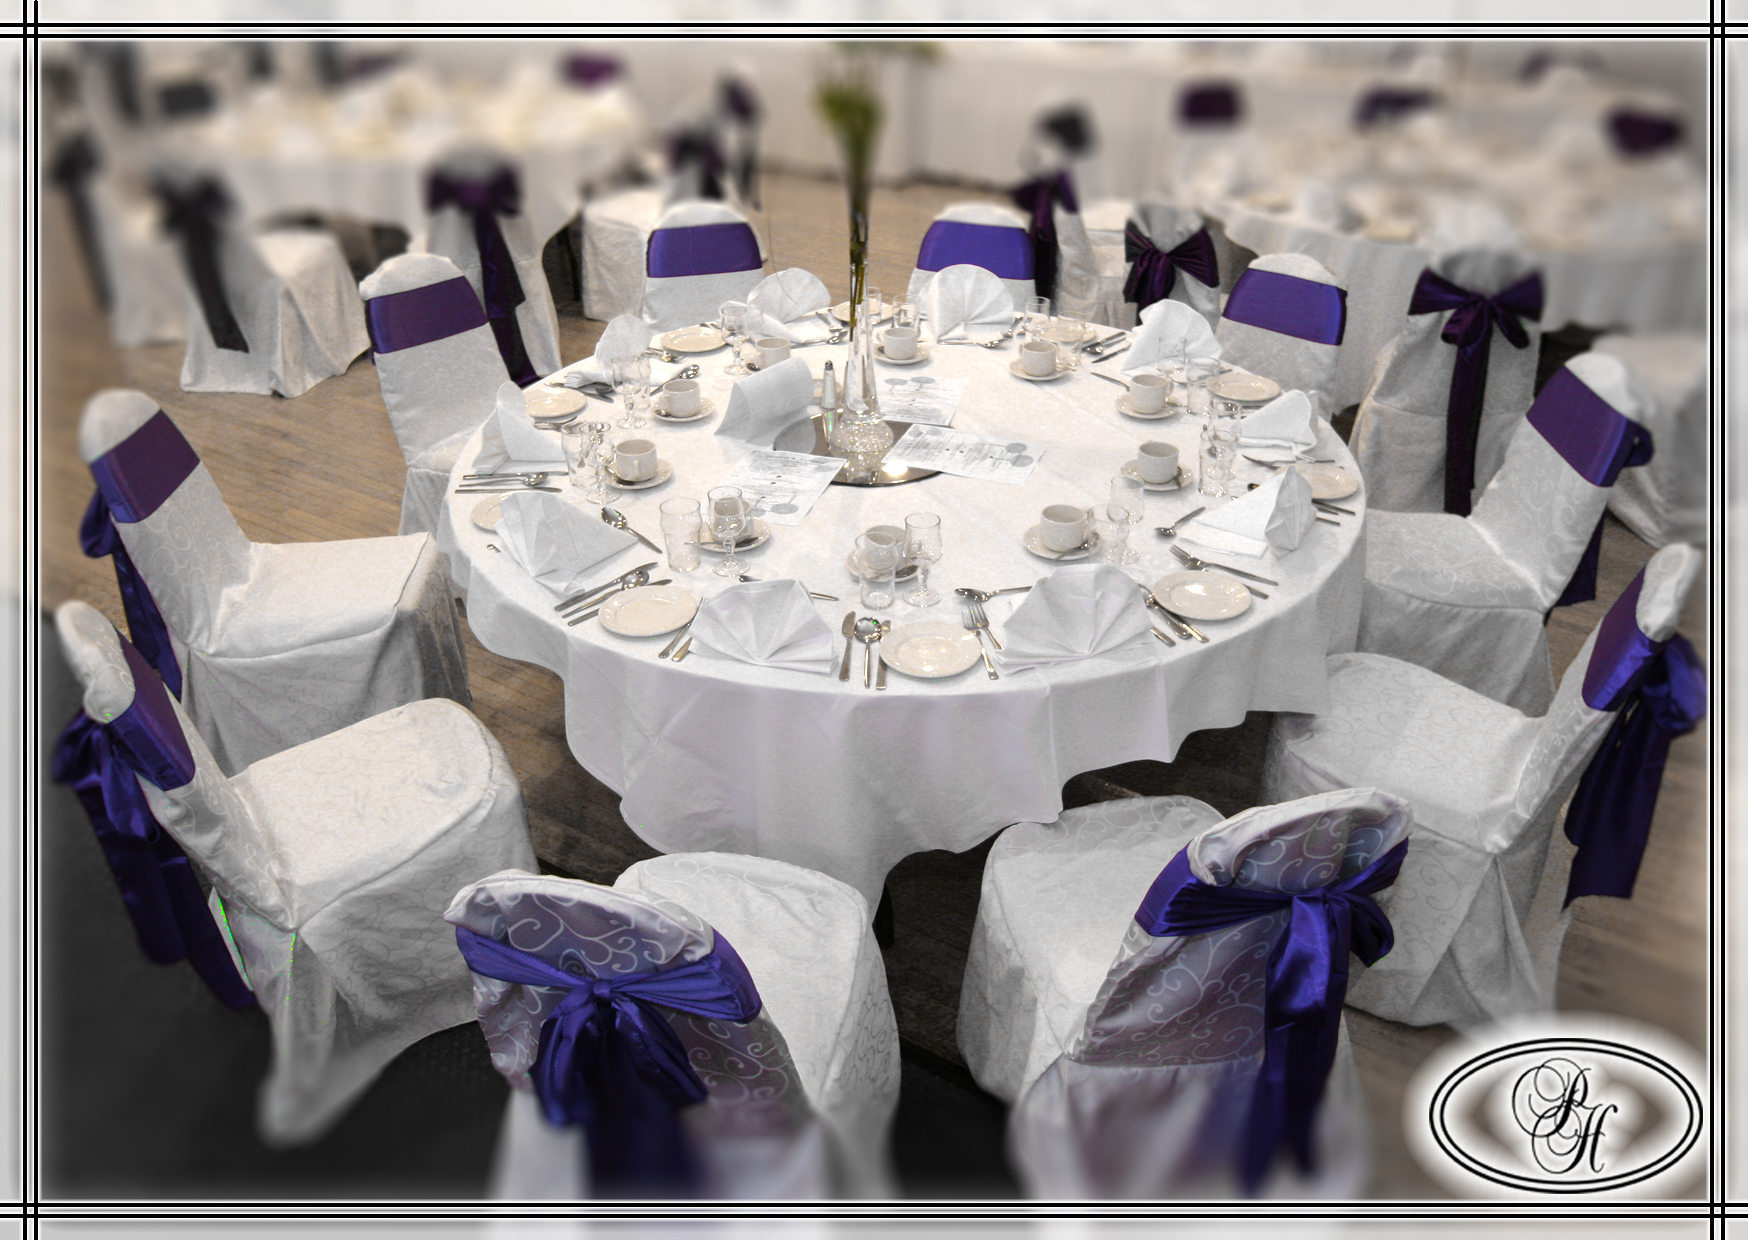 ALL WEDDINGS & FUNCTIONS CATERED FOR